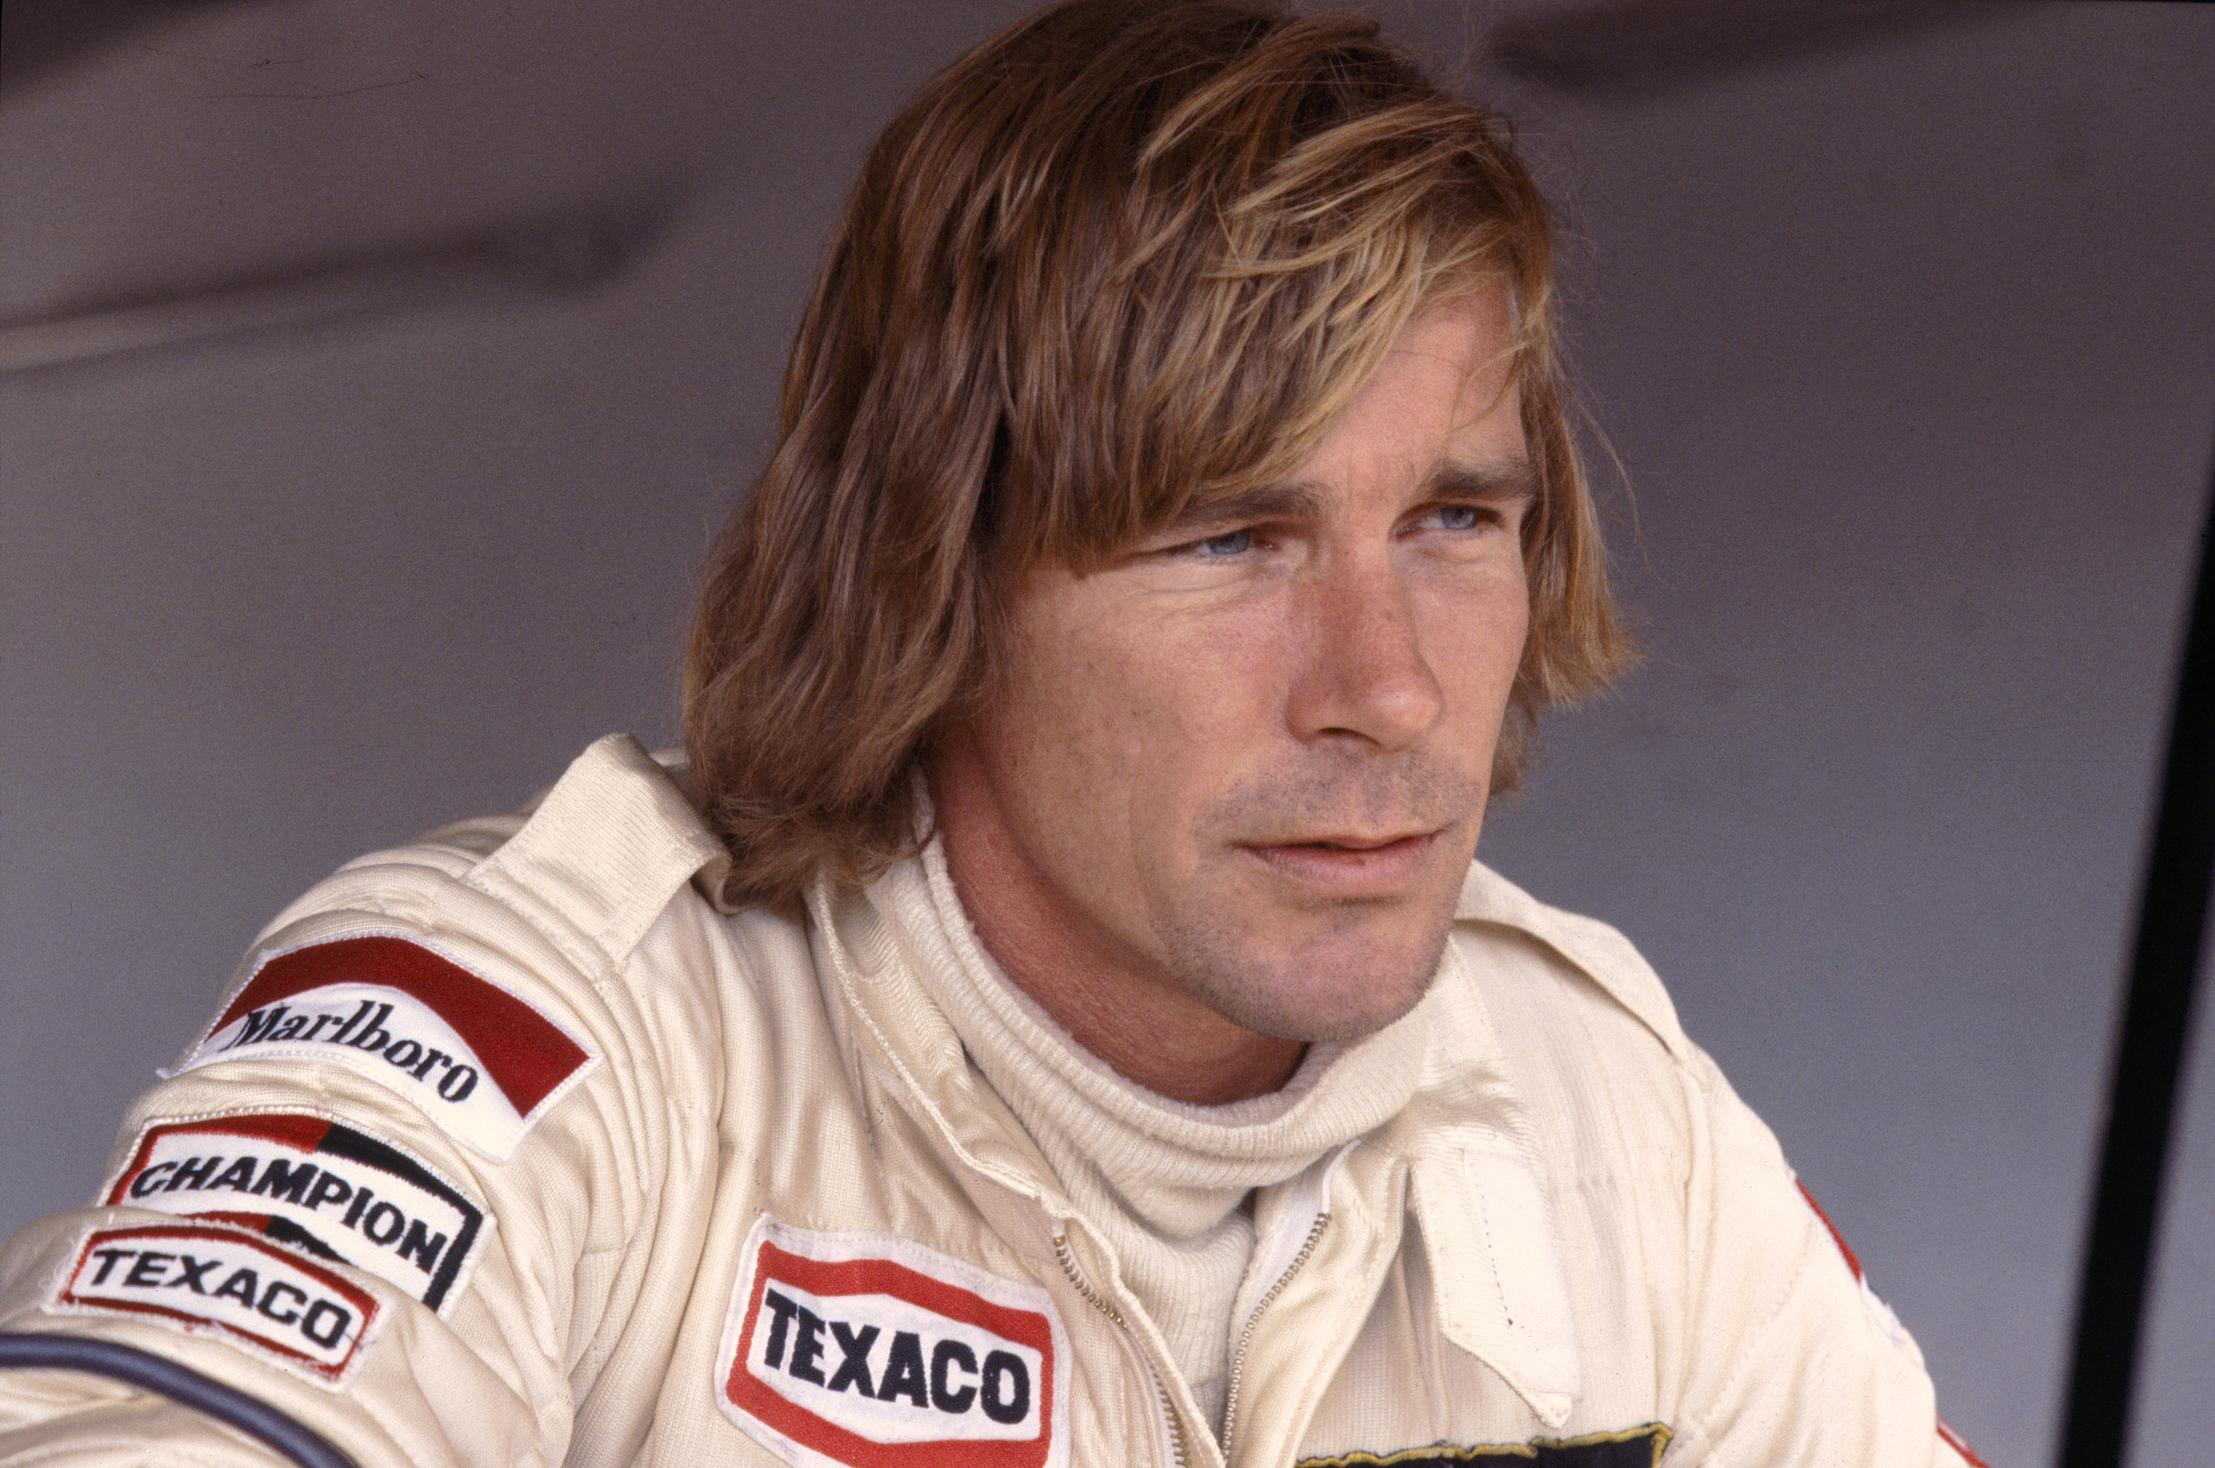 I almost punched James Hunt says Hampshire Formula One legend Murray Walker